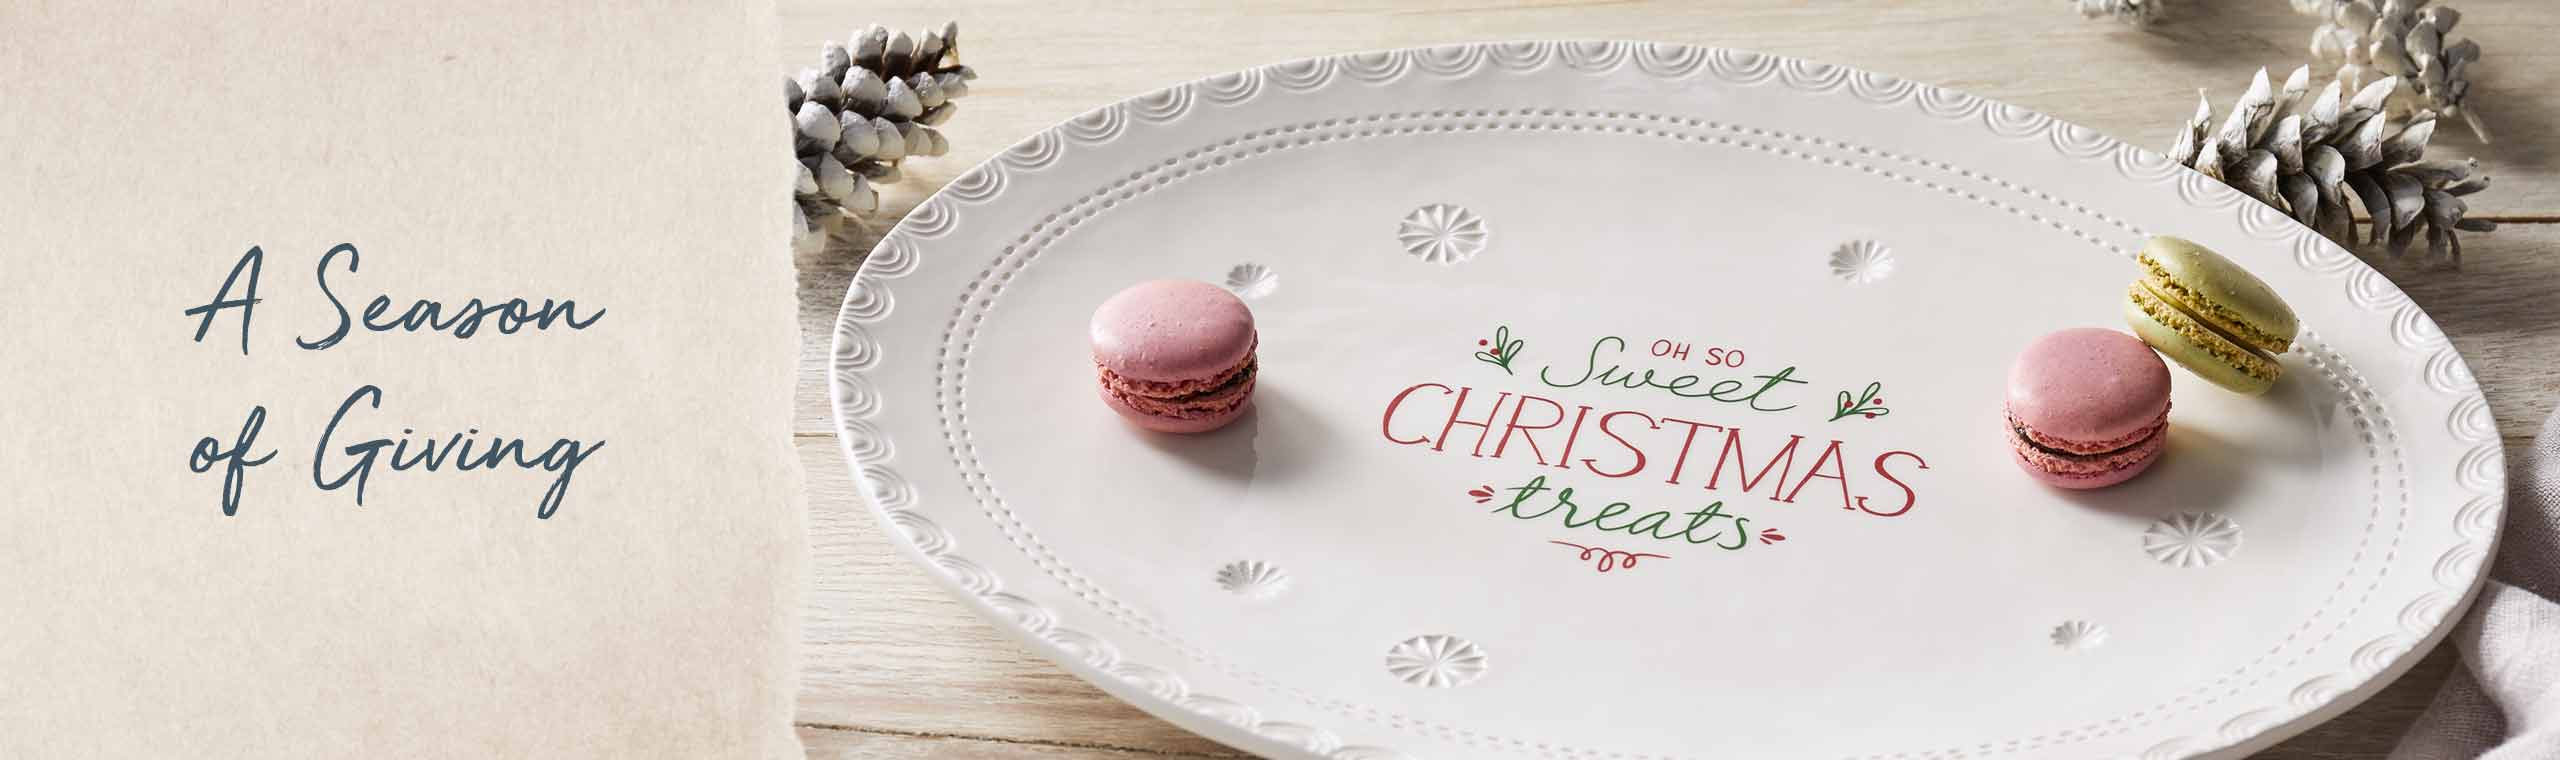 Season of Giving. Cookies on a plate with the message Oh so sweet Christmas treats.